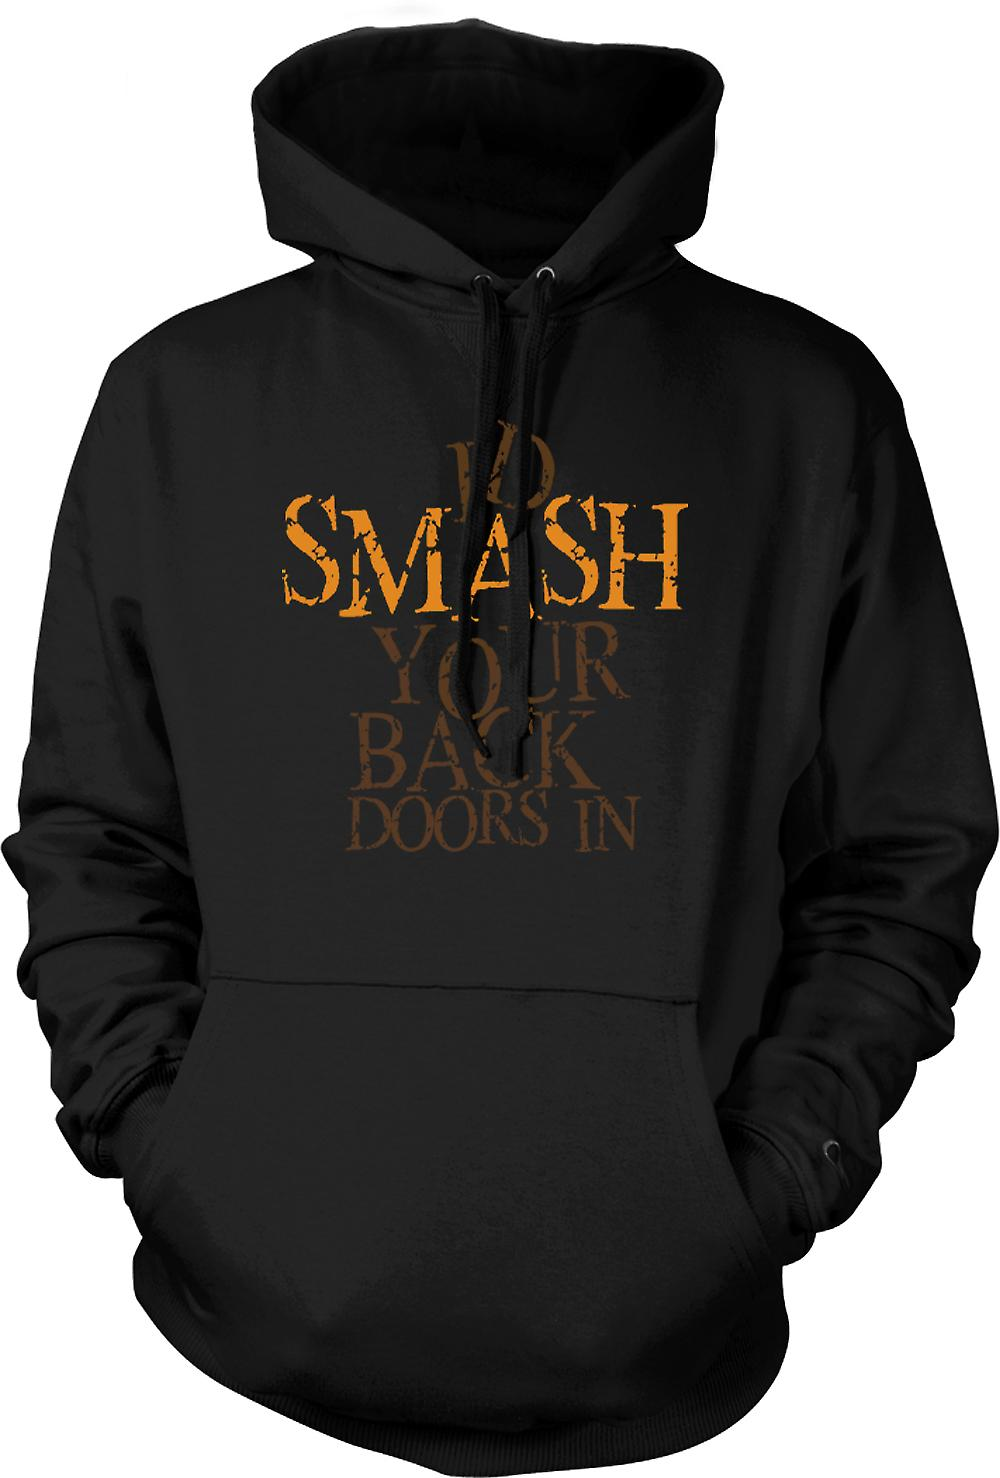 Mens Hoodie - Id Smash Your Back Doors In - Funny Crude